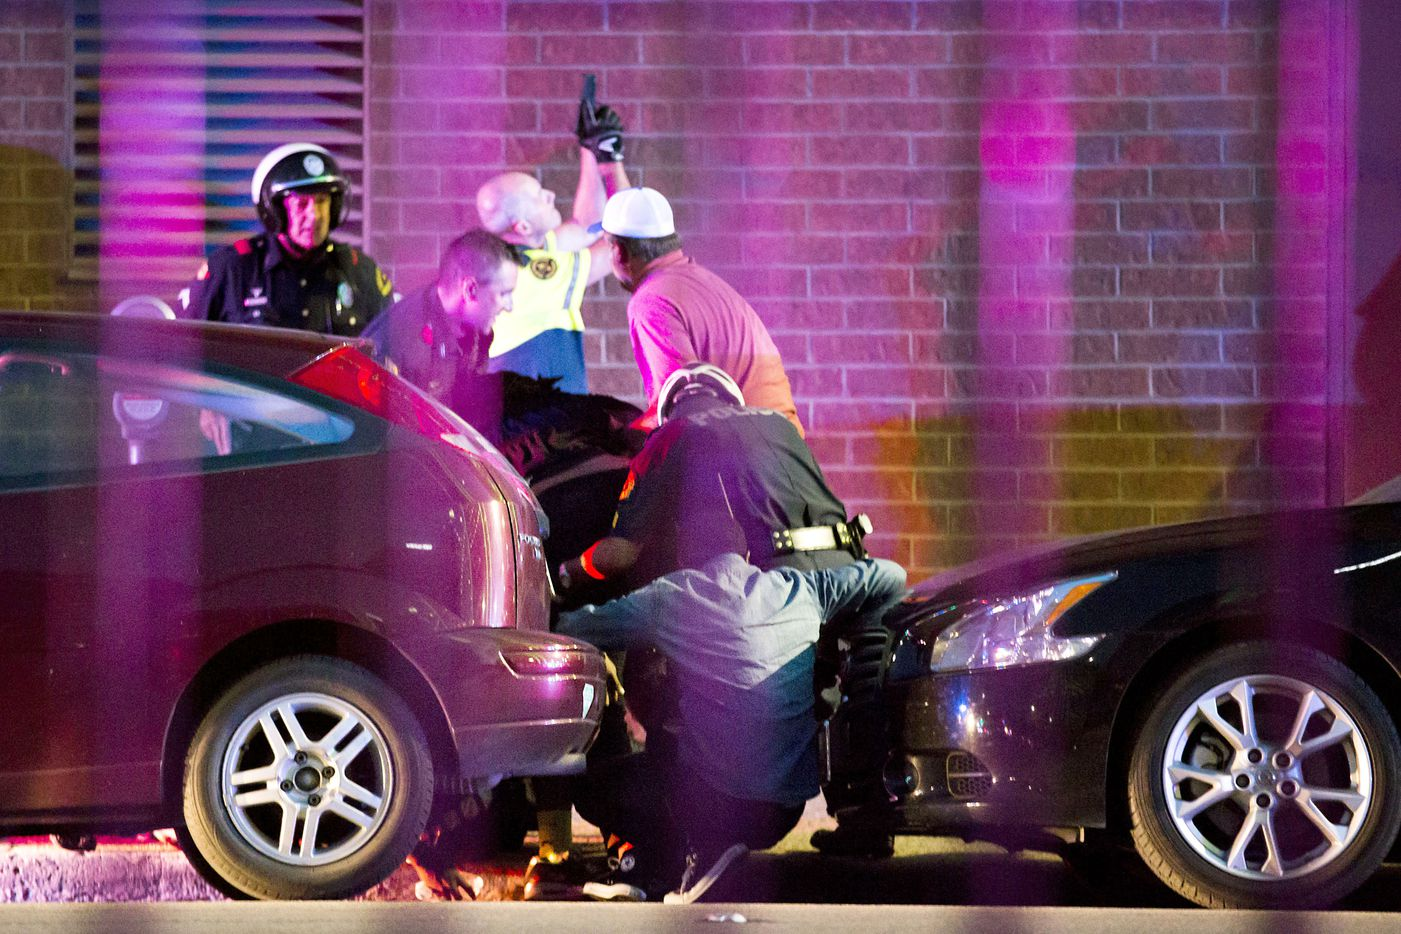 Shetamia Taylor (hunched over, in dark shirt, center), who was shot in the leg, is helped by several officers as they shield civilians and evacuate them from a position between two parked cars on Lamar Street between Main and Commerce at 9:02 p.m., minutes after the first shots were fired.